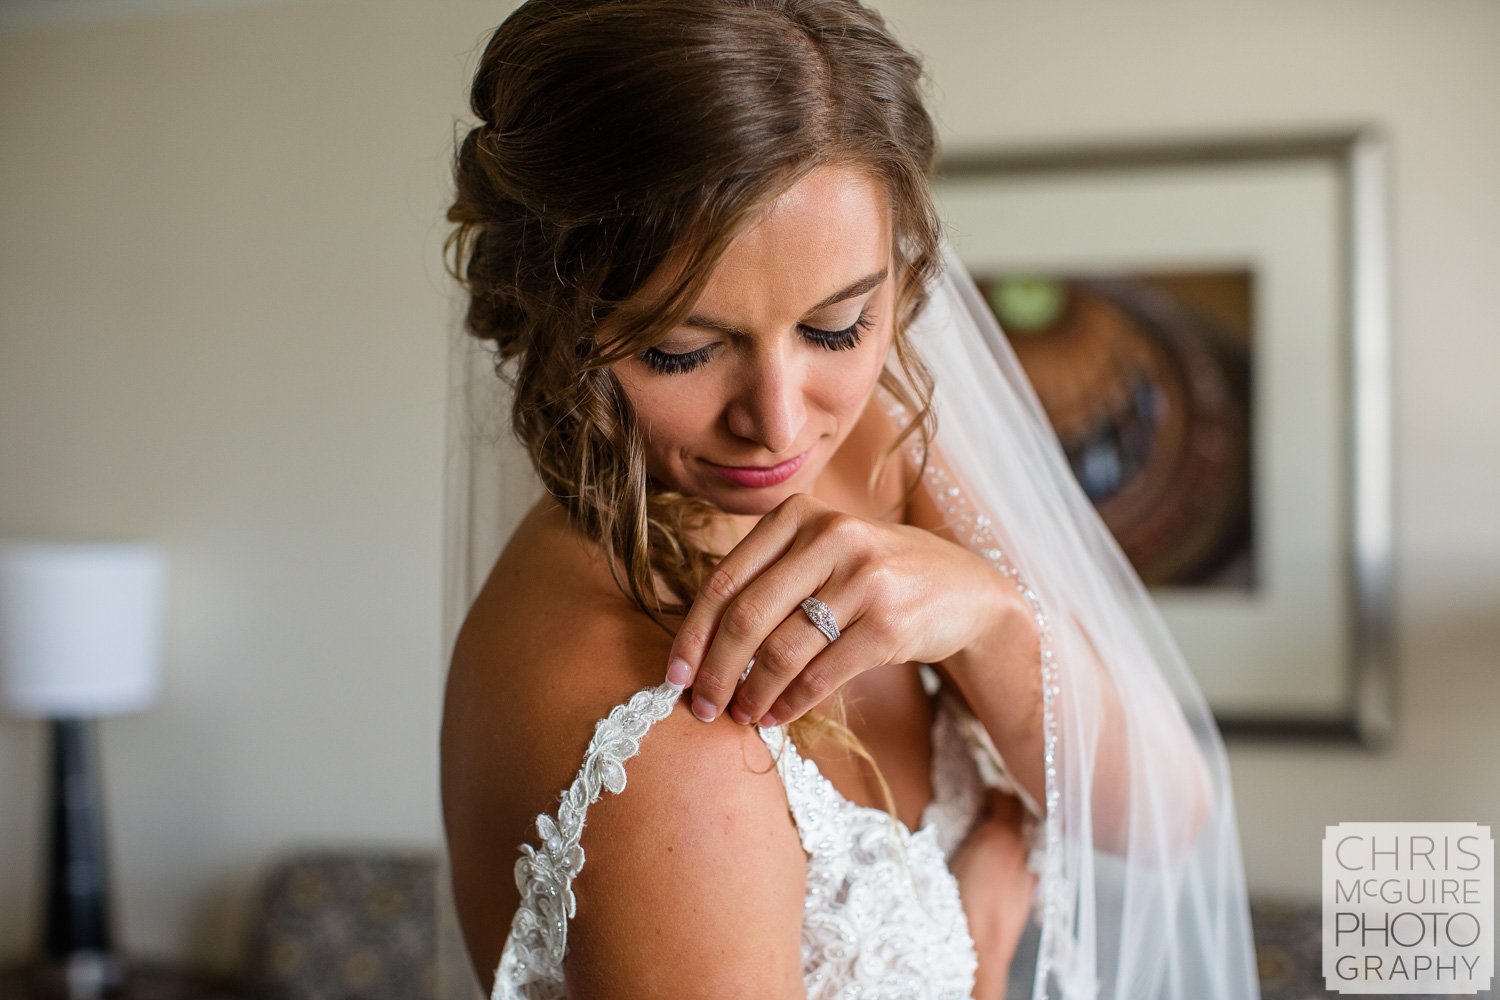 Bride puts on wedding dress at Abe Lincoln Hotel in Springfield Illinois